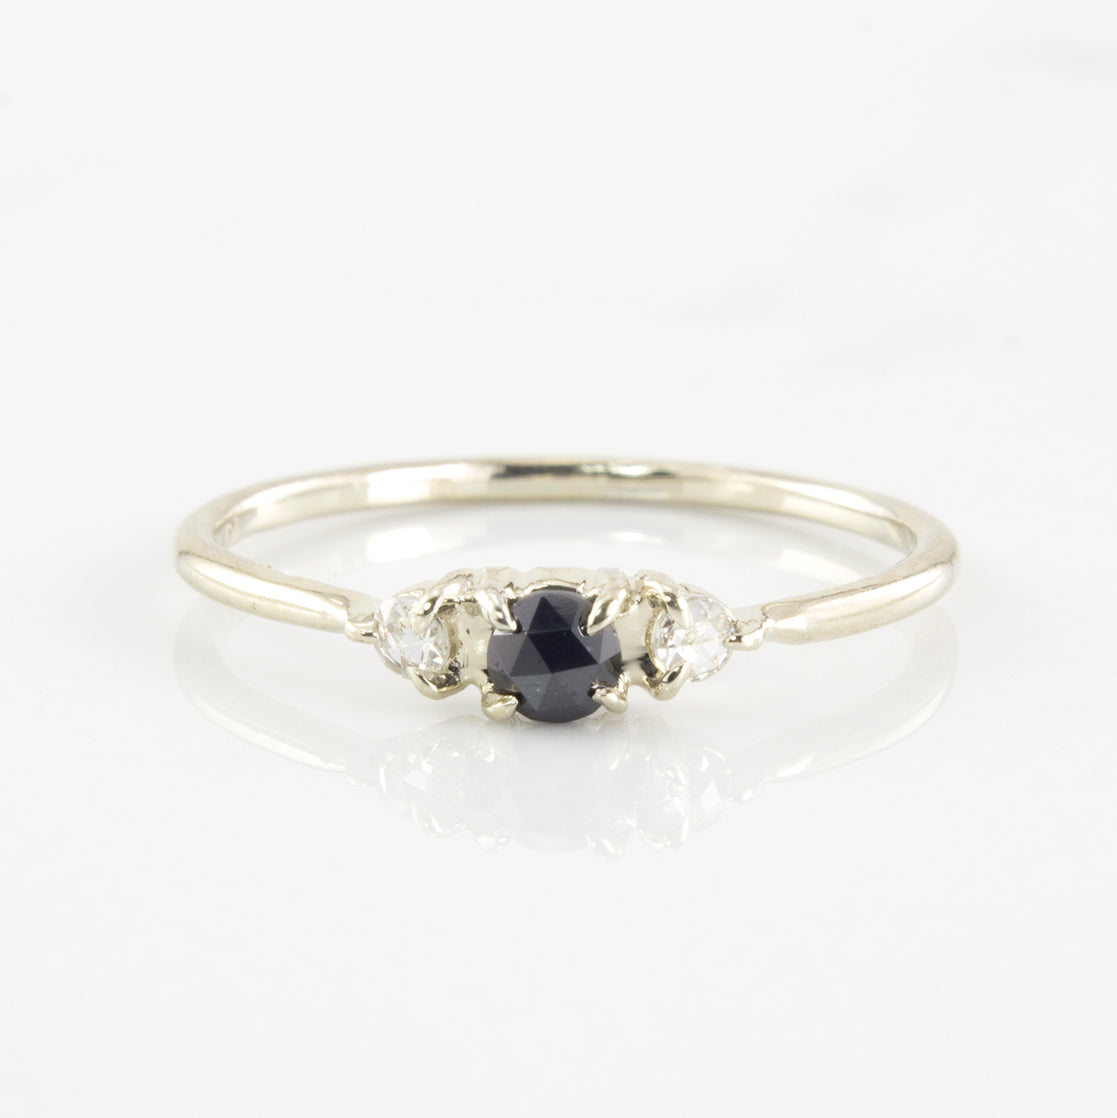 Petite Black and White Diamond Ring | 0.12 ctw | SZ 5.25 |